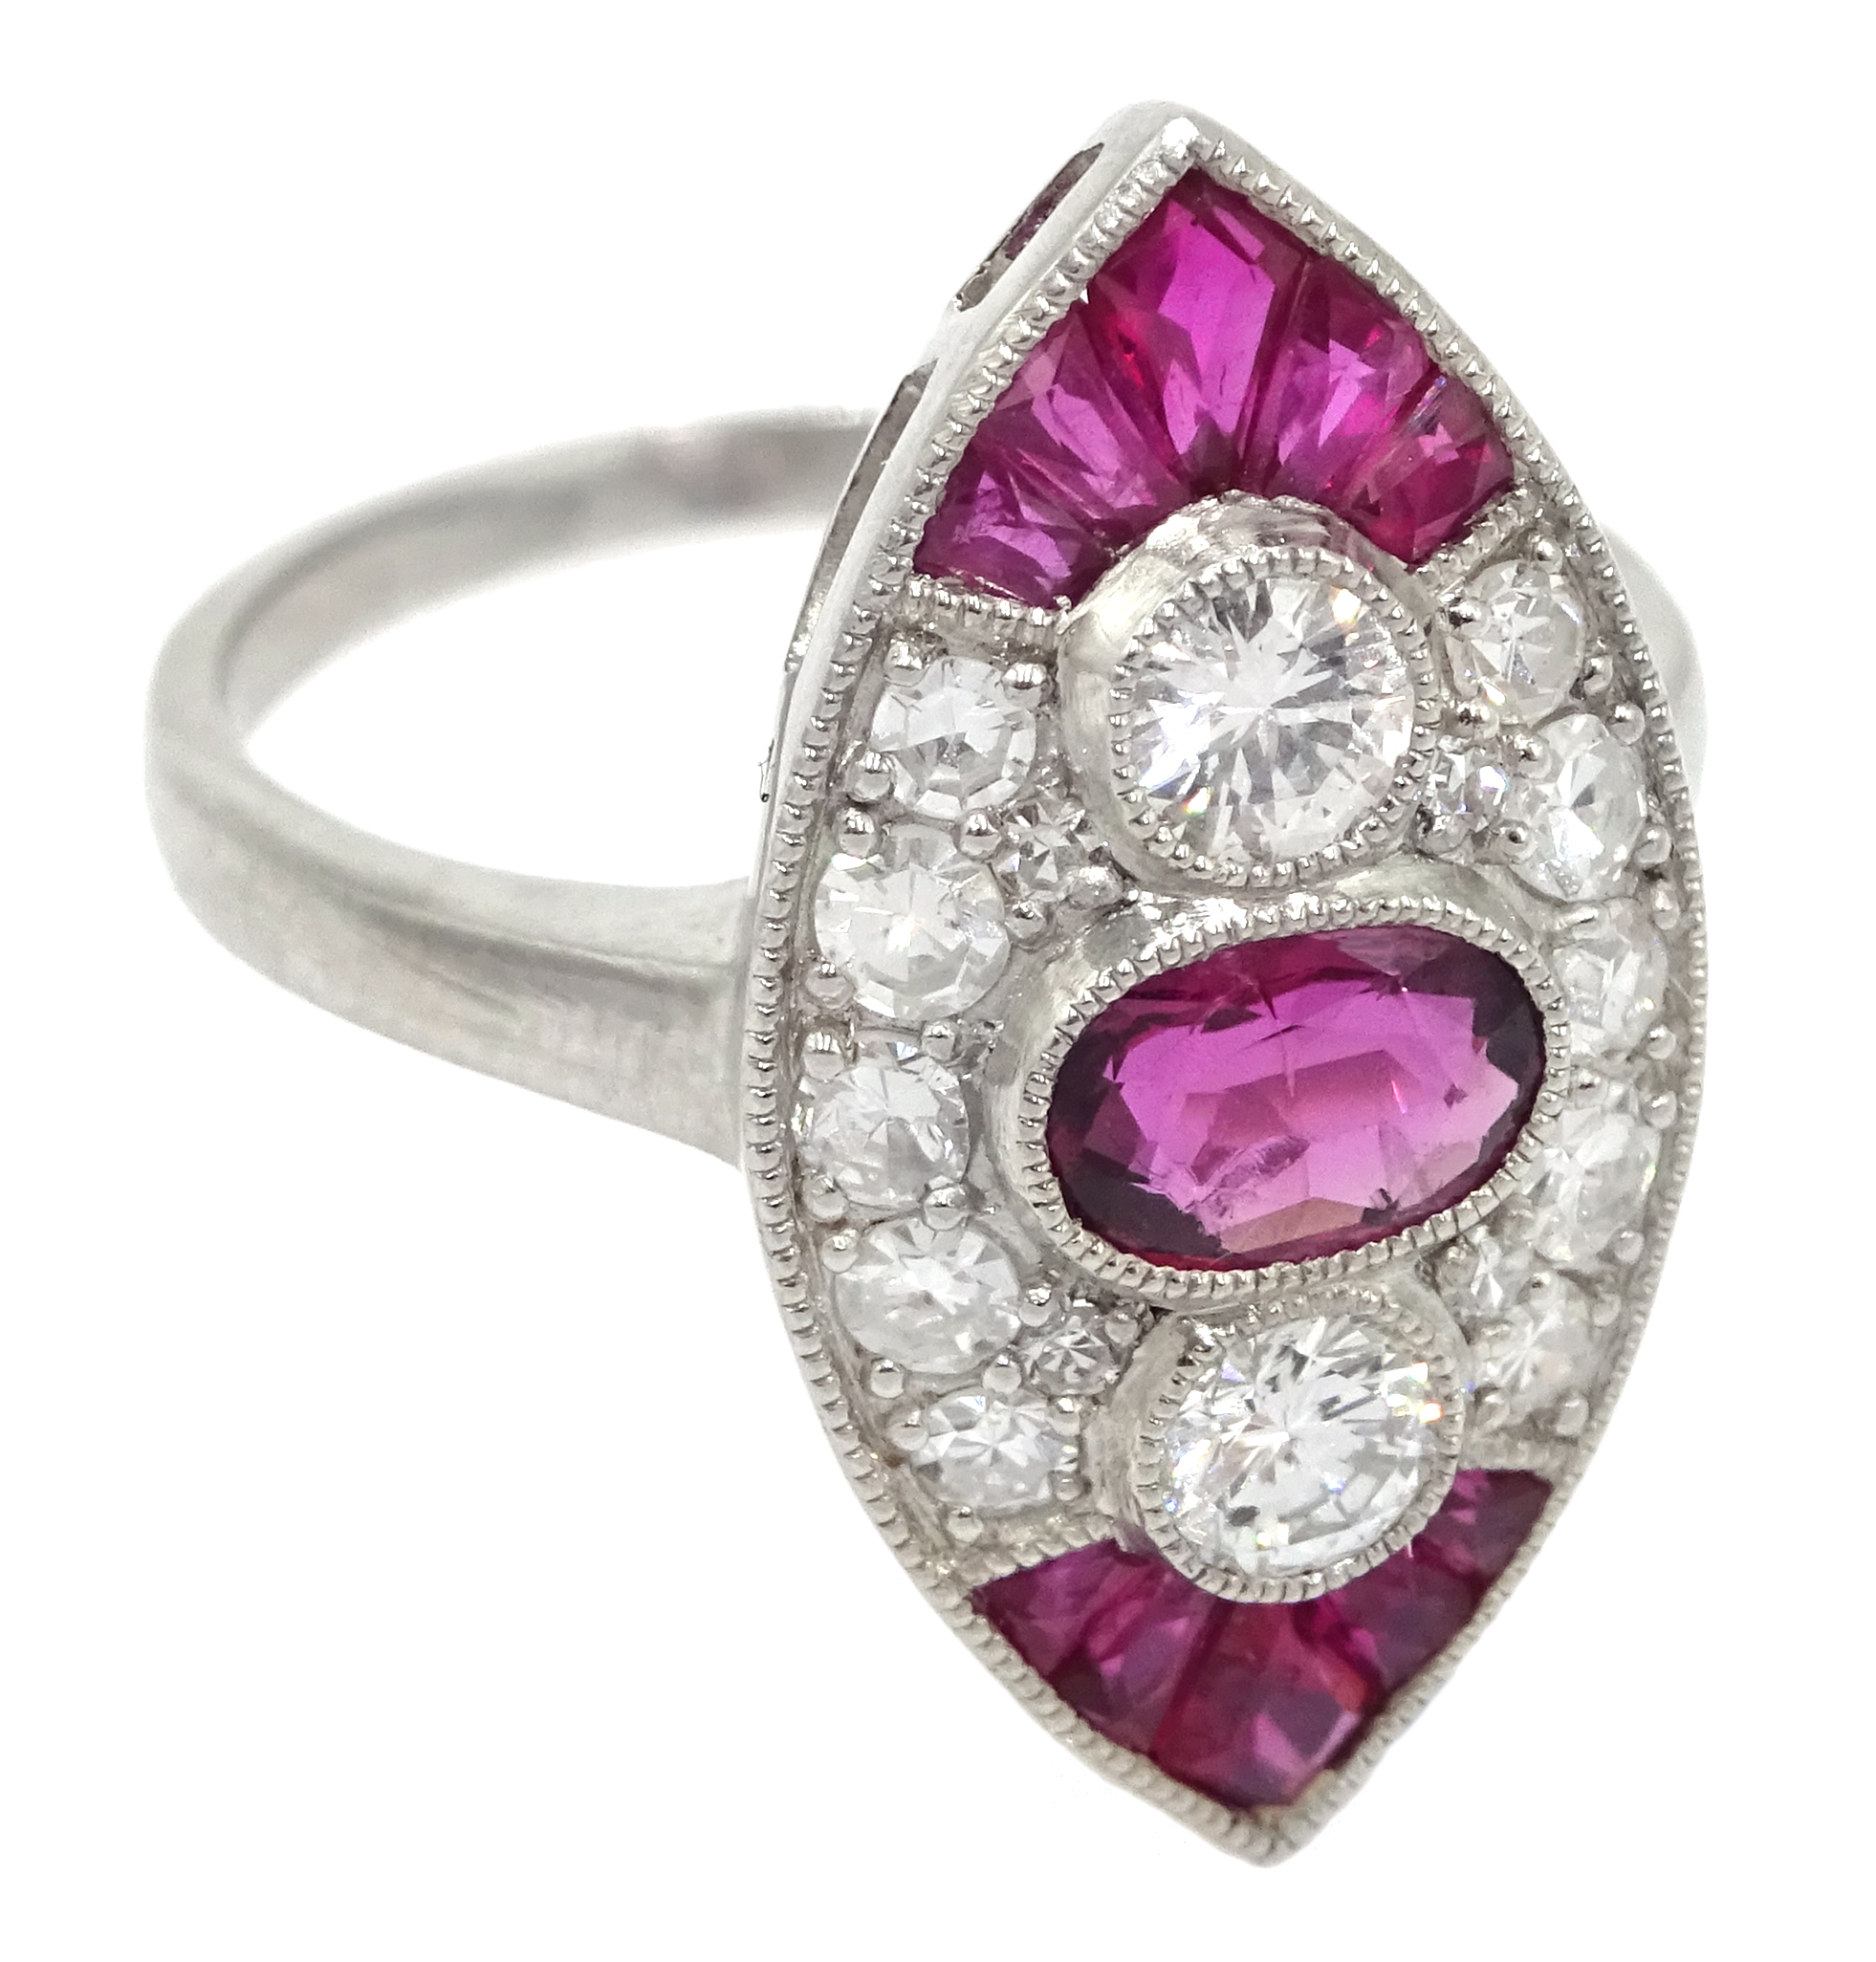 Victorian style marquise shaped platinum ring set with rubies and diamonds, free UK mainland - Image 3 of 6